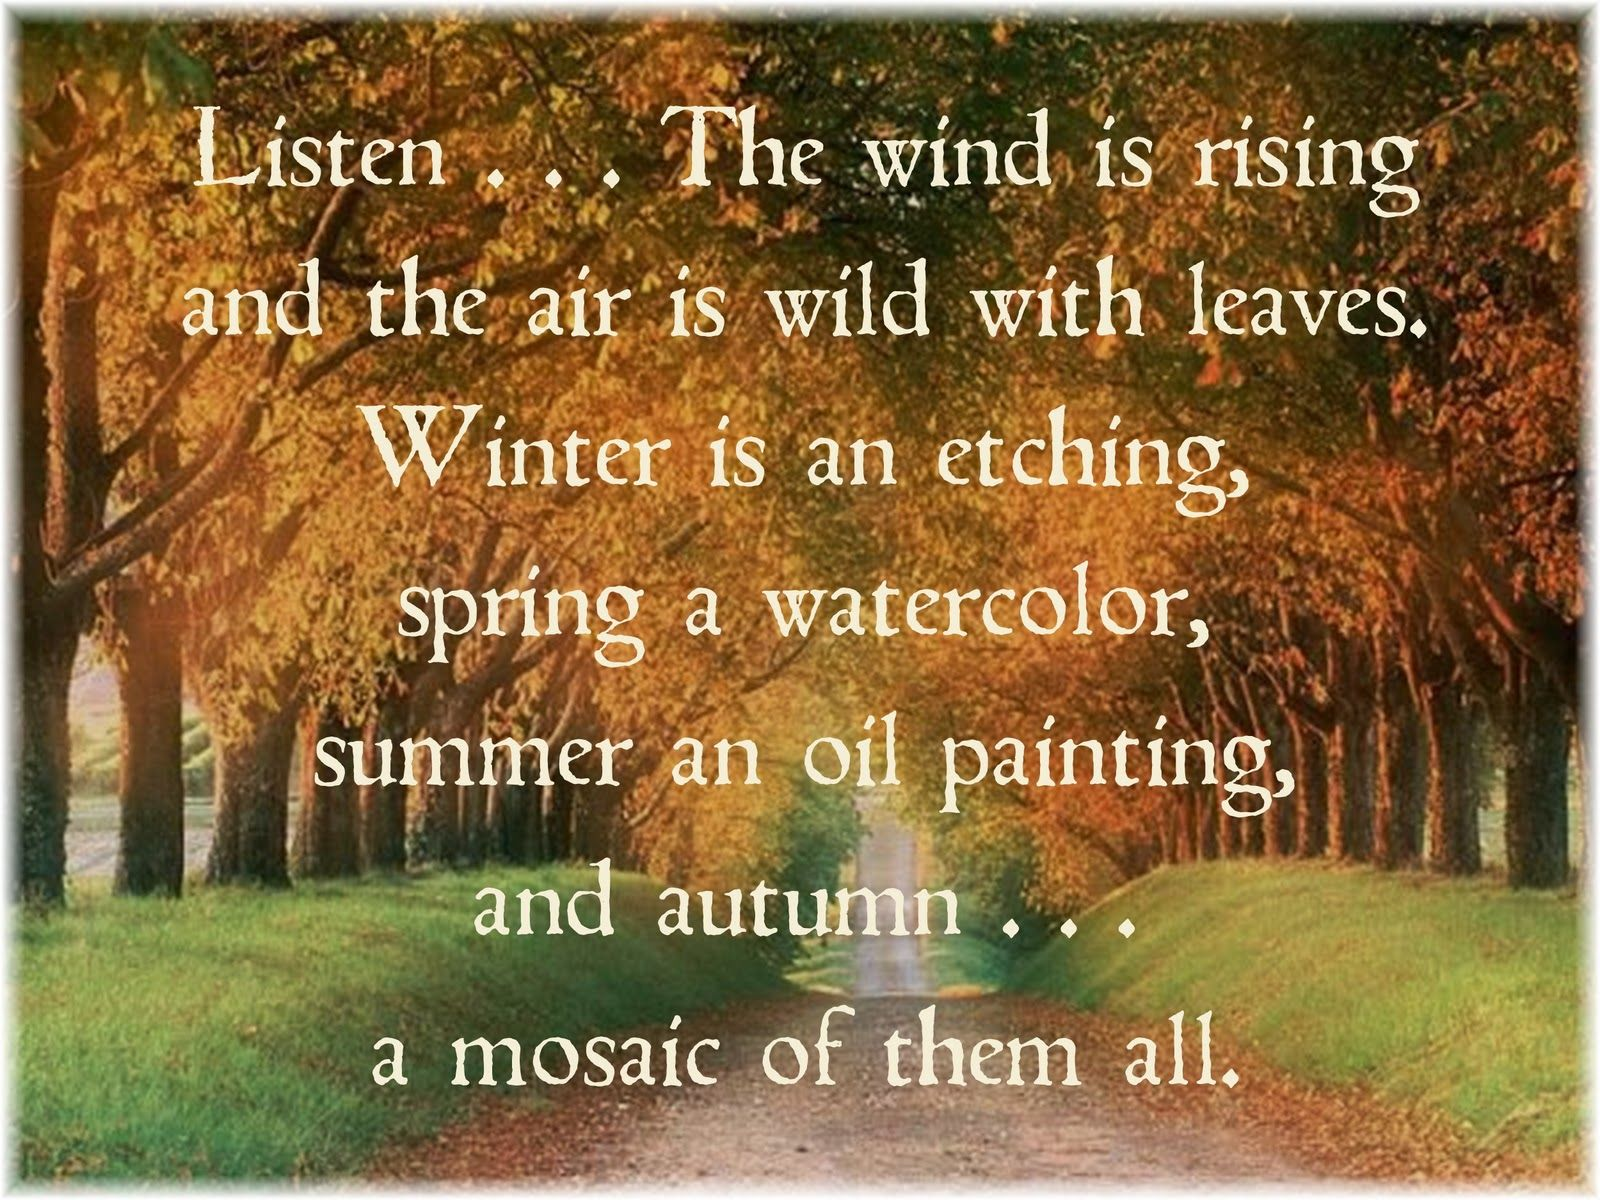 Fall Quotes About Love The Feathered Nest  Looking Forward To Fall Holidays